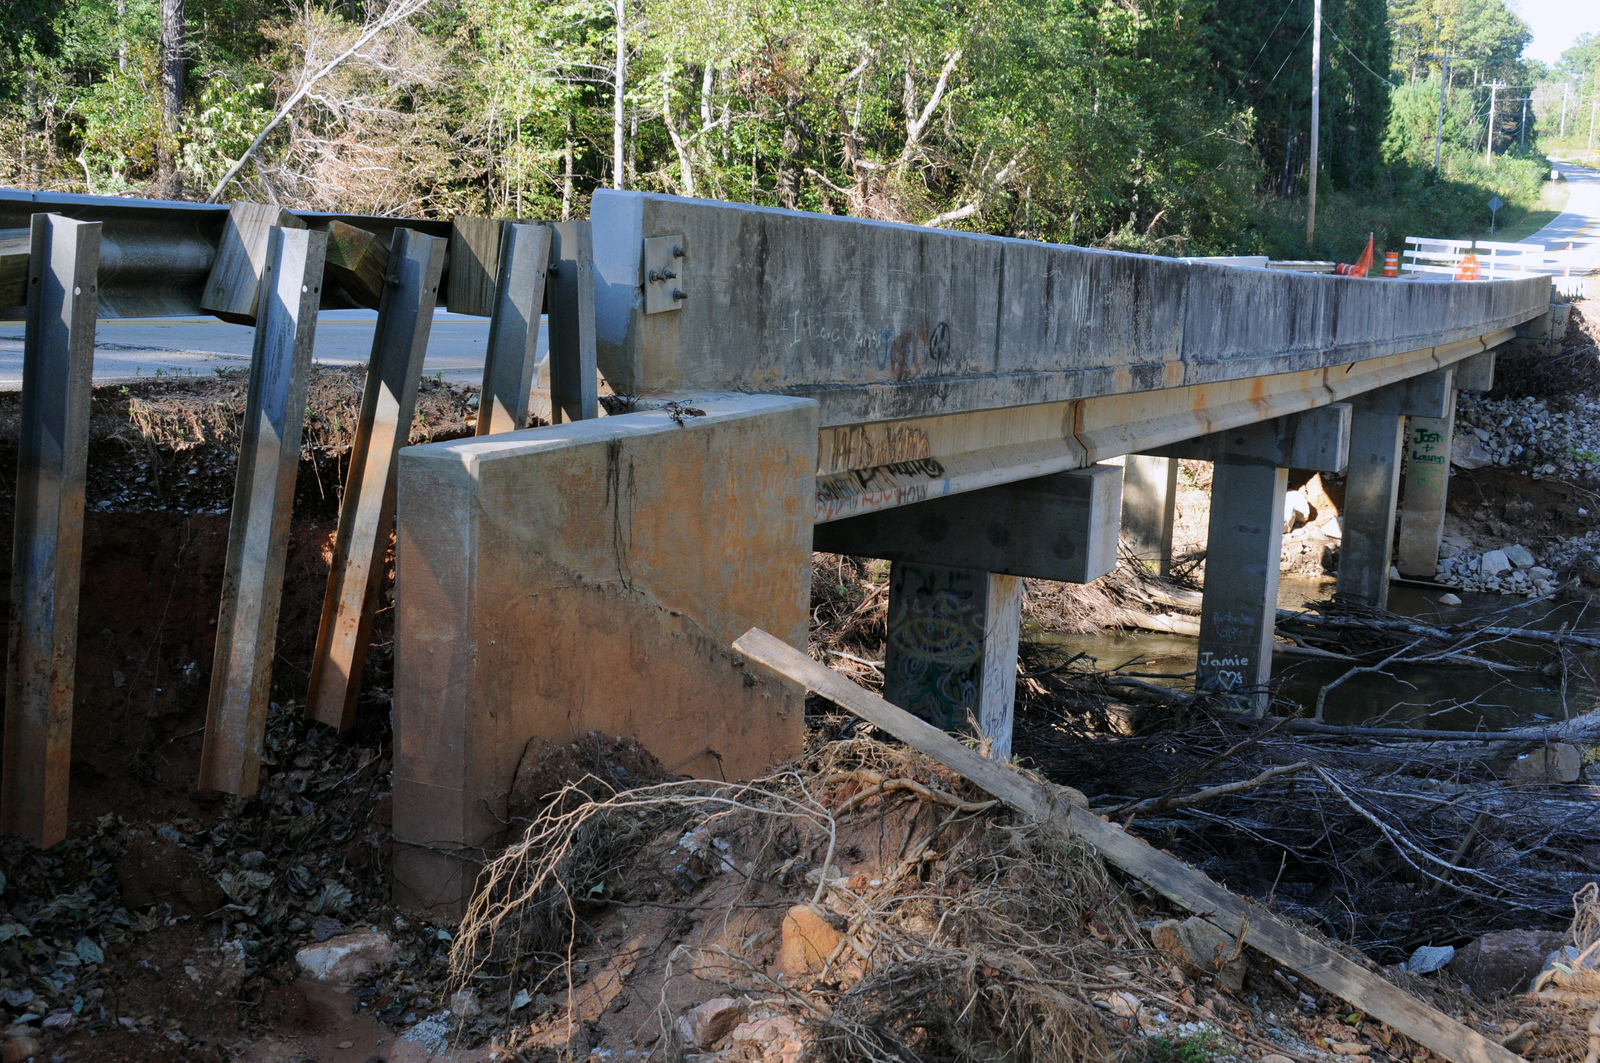 Flooding ^ Severe Storm - Douglasville, Ga. , October 19, 2009 -- The Britain Road bridge over the Douglas County Dog River has been closed due to undermining of basic supports by the September severe storms and flooding.  FEMA Public Assistance funds have been requested to pay a portion of the repair cost.  George Armstrong/FEMA